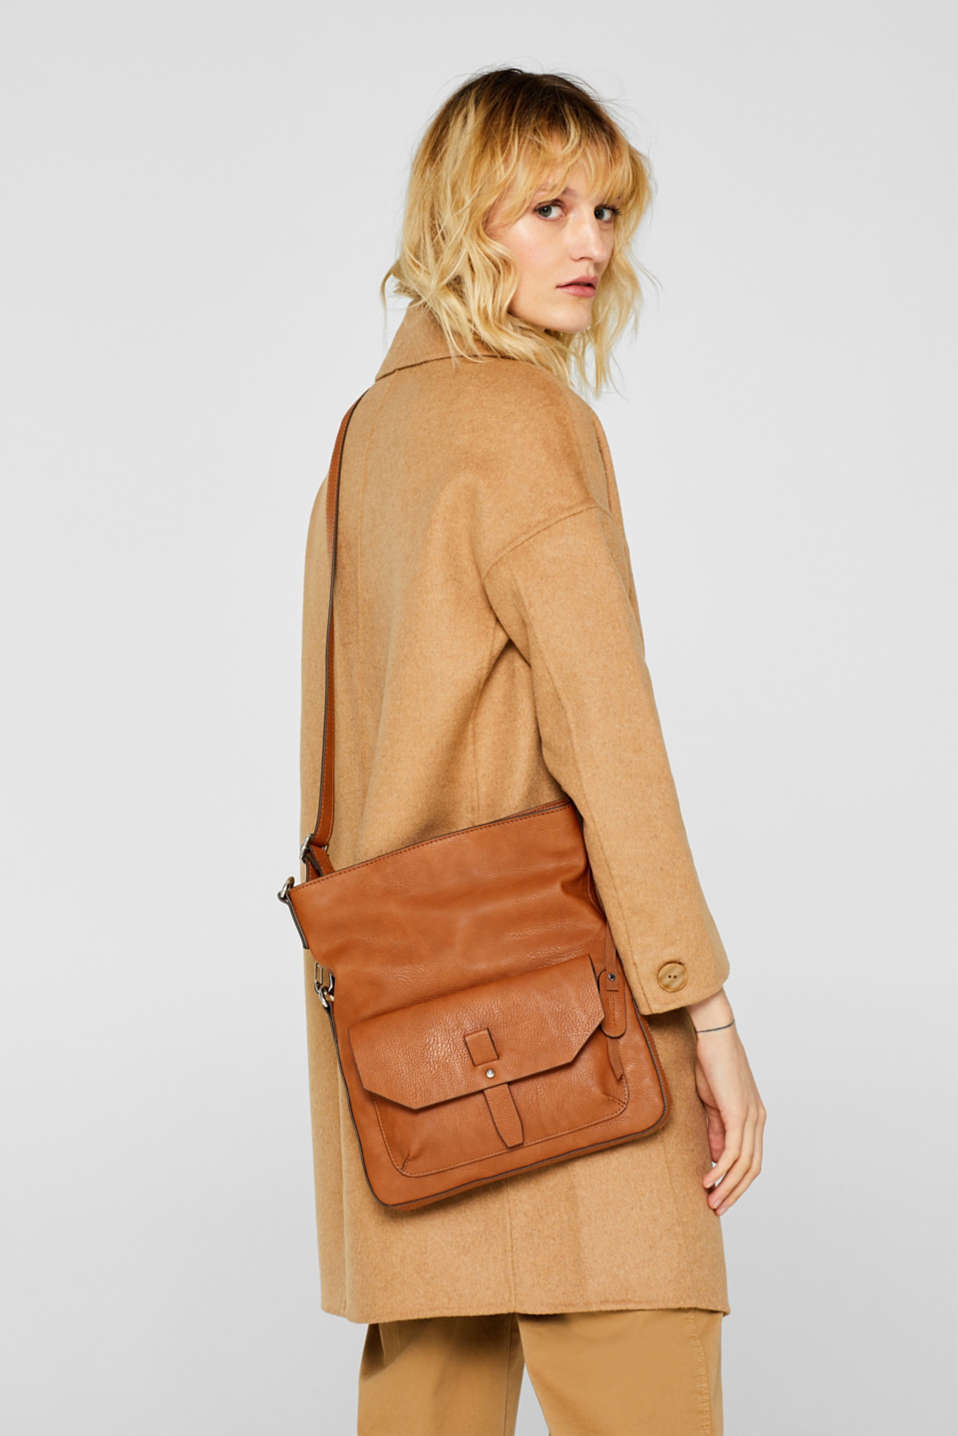 Flapover bag in faux leather, RUST BROWN, detail image number 1